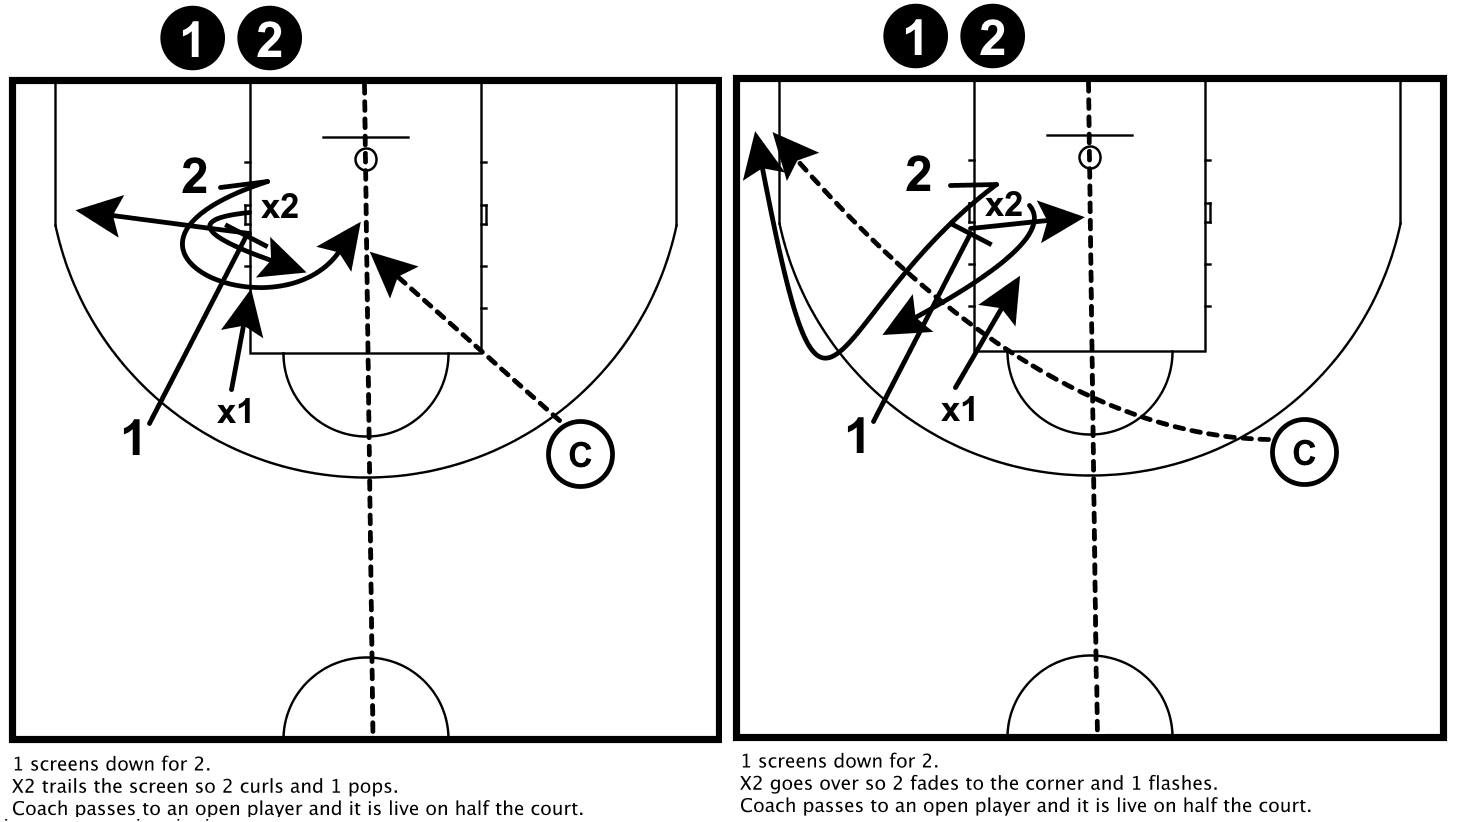 drills-pin-down-golden-state